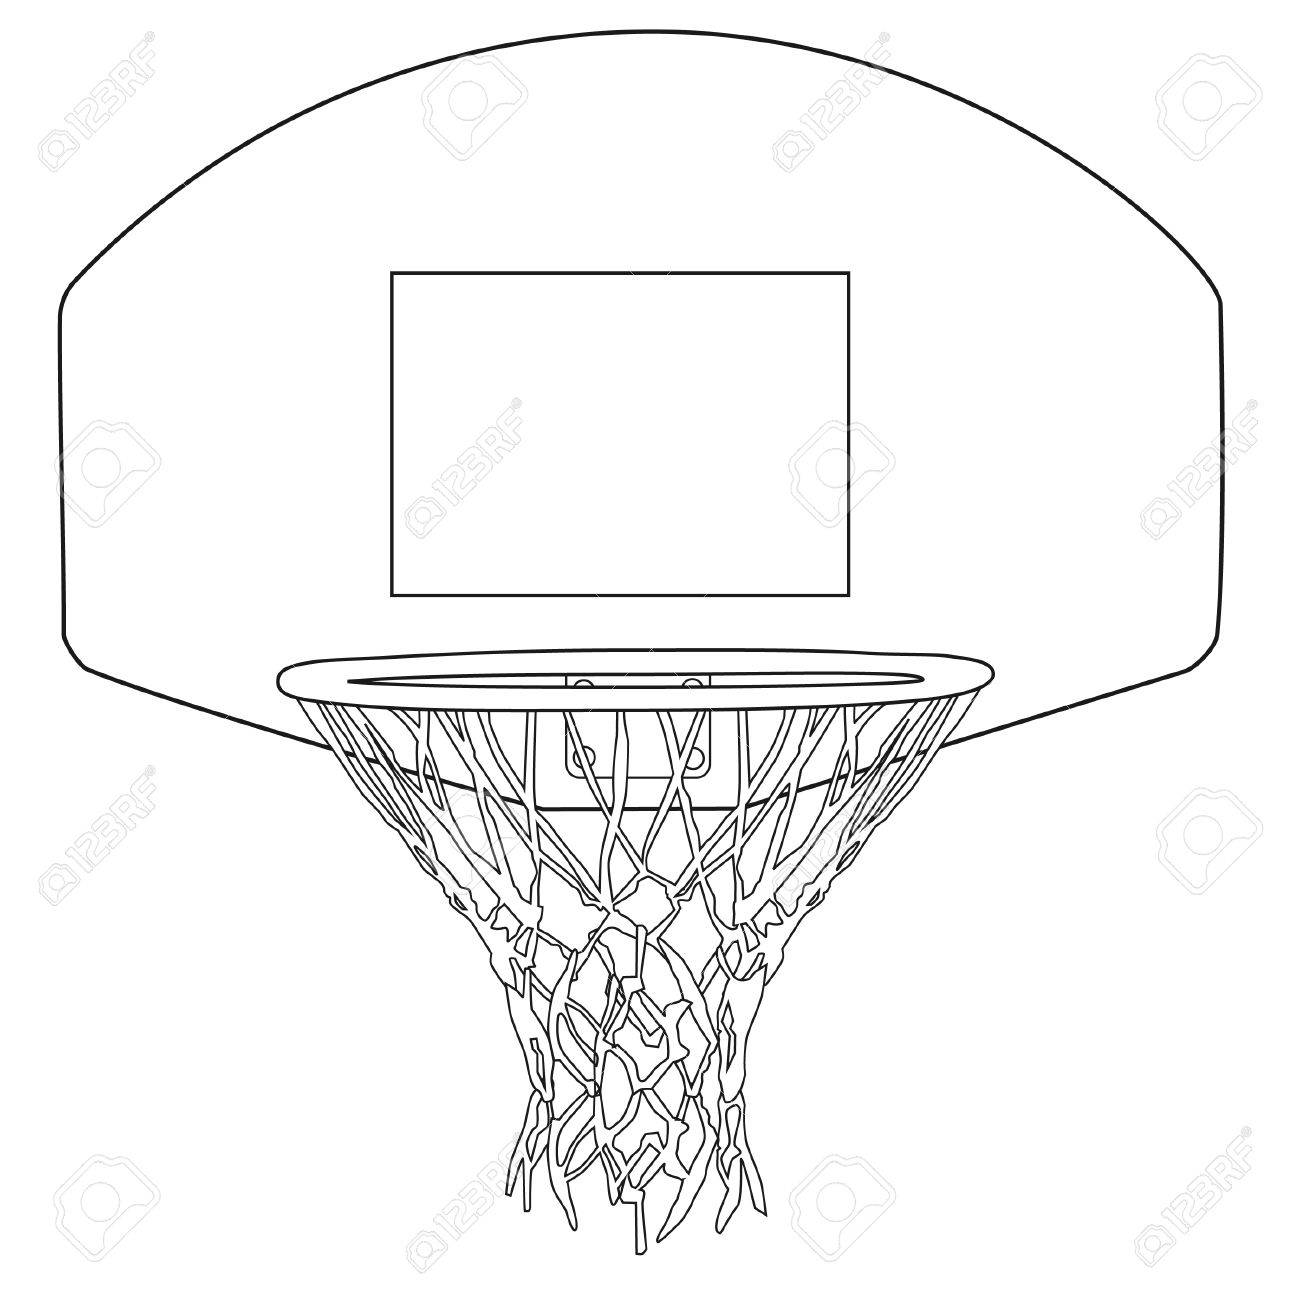 basketball drawing pictures at getdrawings com free for personal